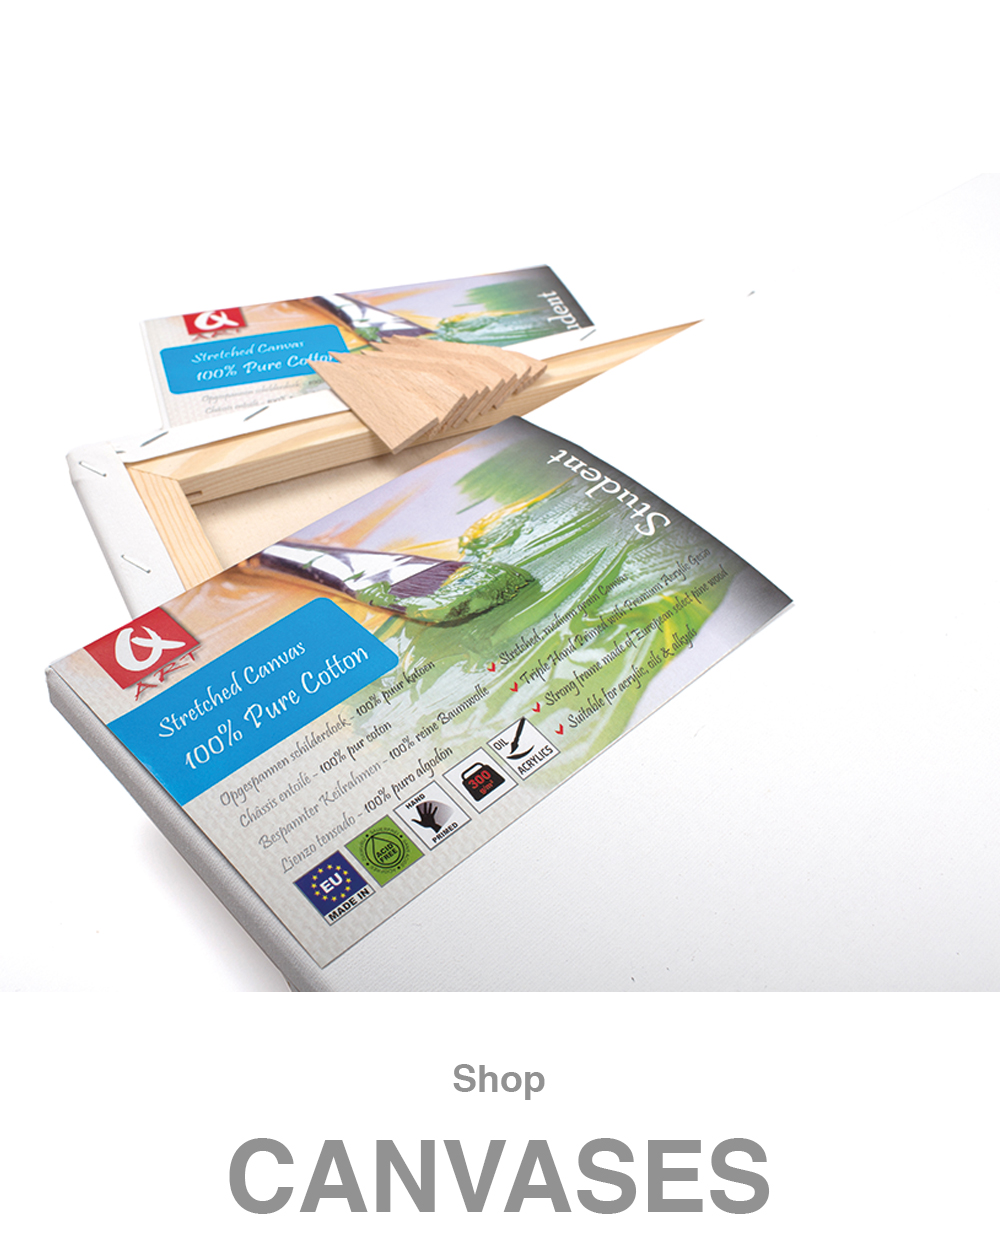 Stretched Canvases, Cotton Canvases, Linen Canvases, Canvas Boards, Canvas Panels